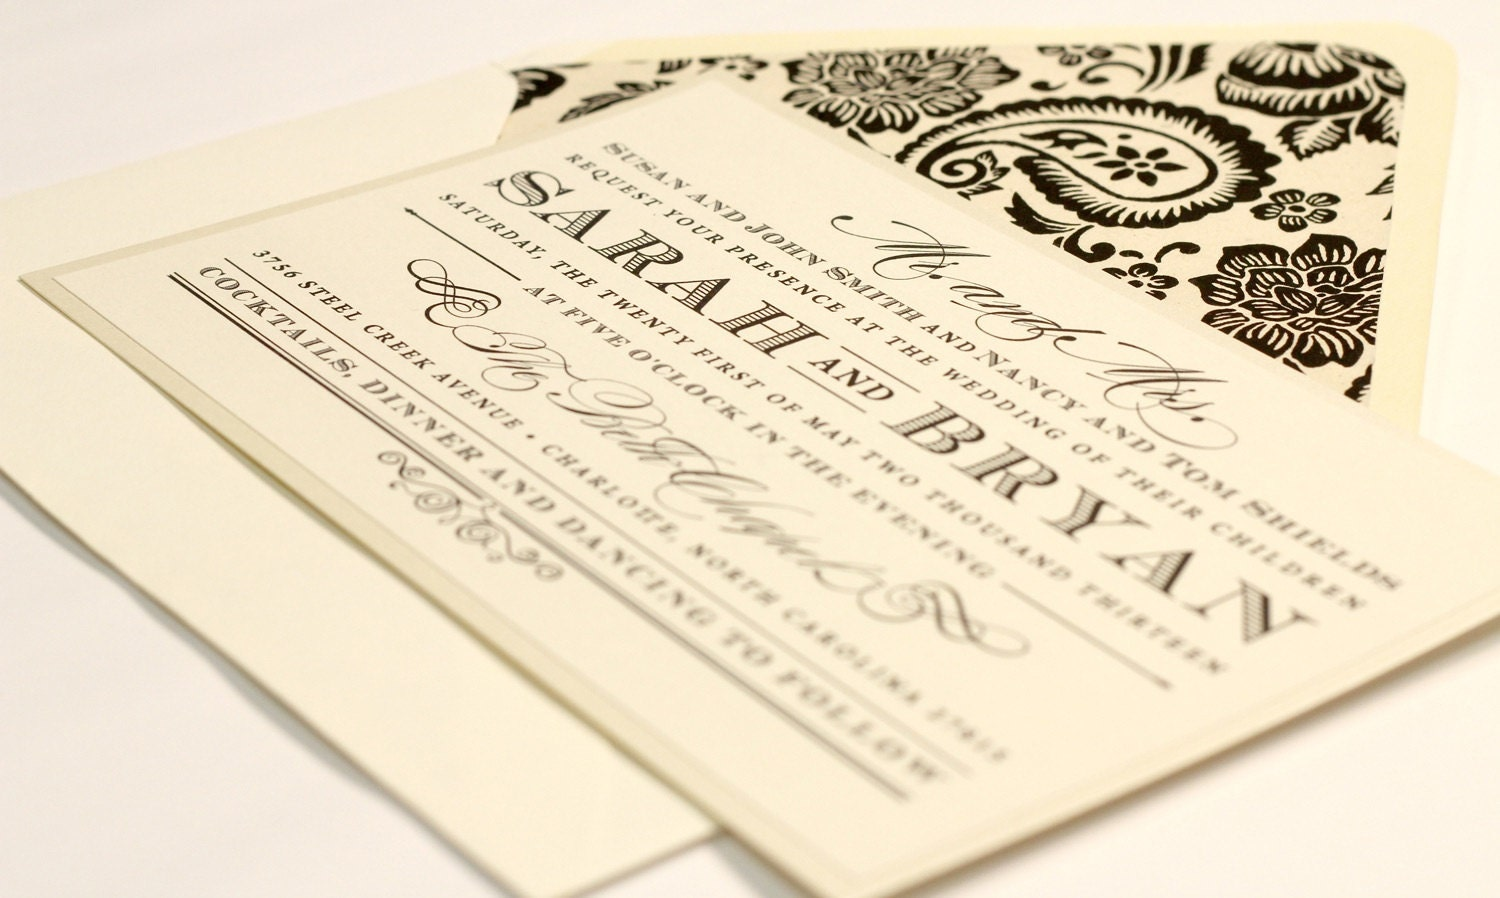 unavailable listing on etsy With formal wedding invitations etsy